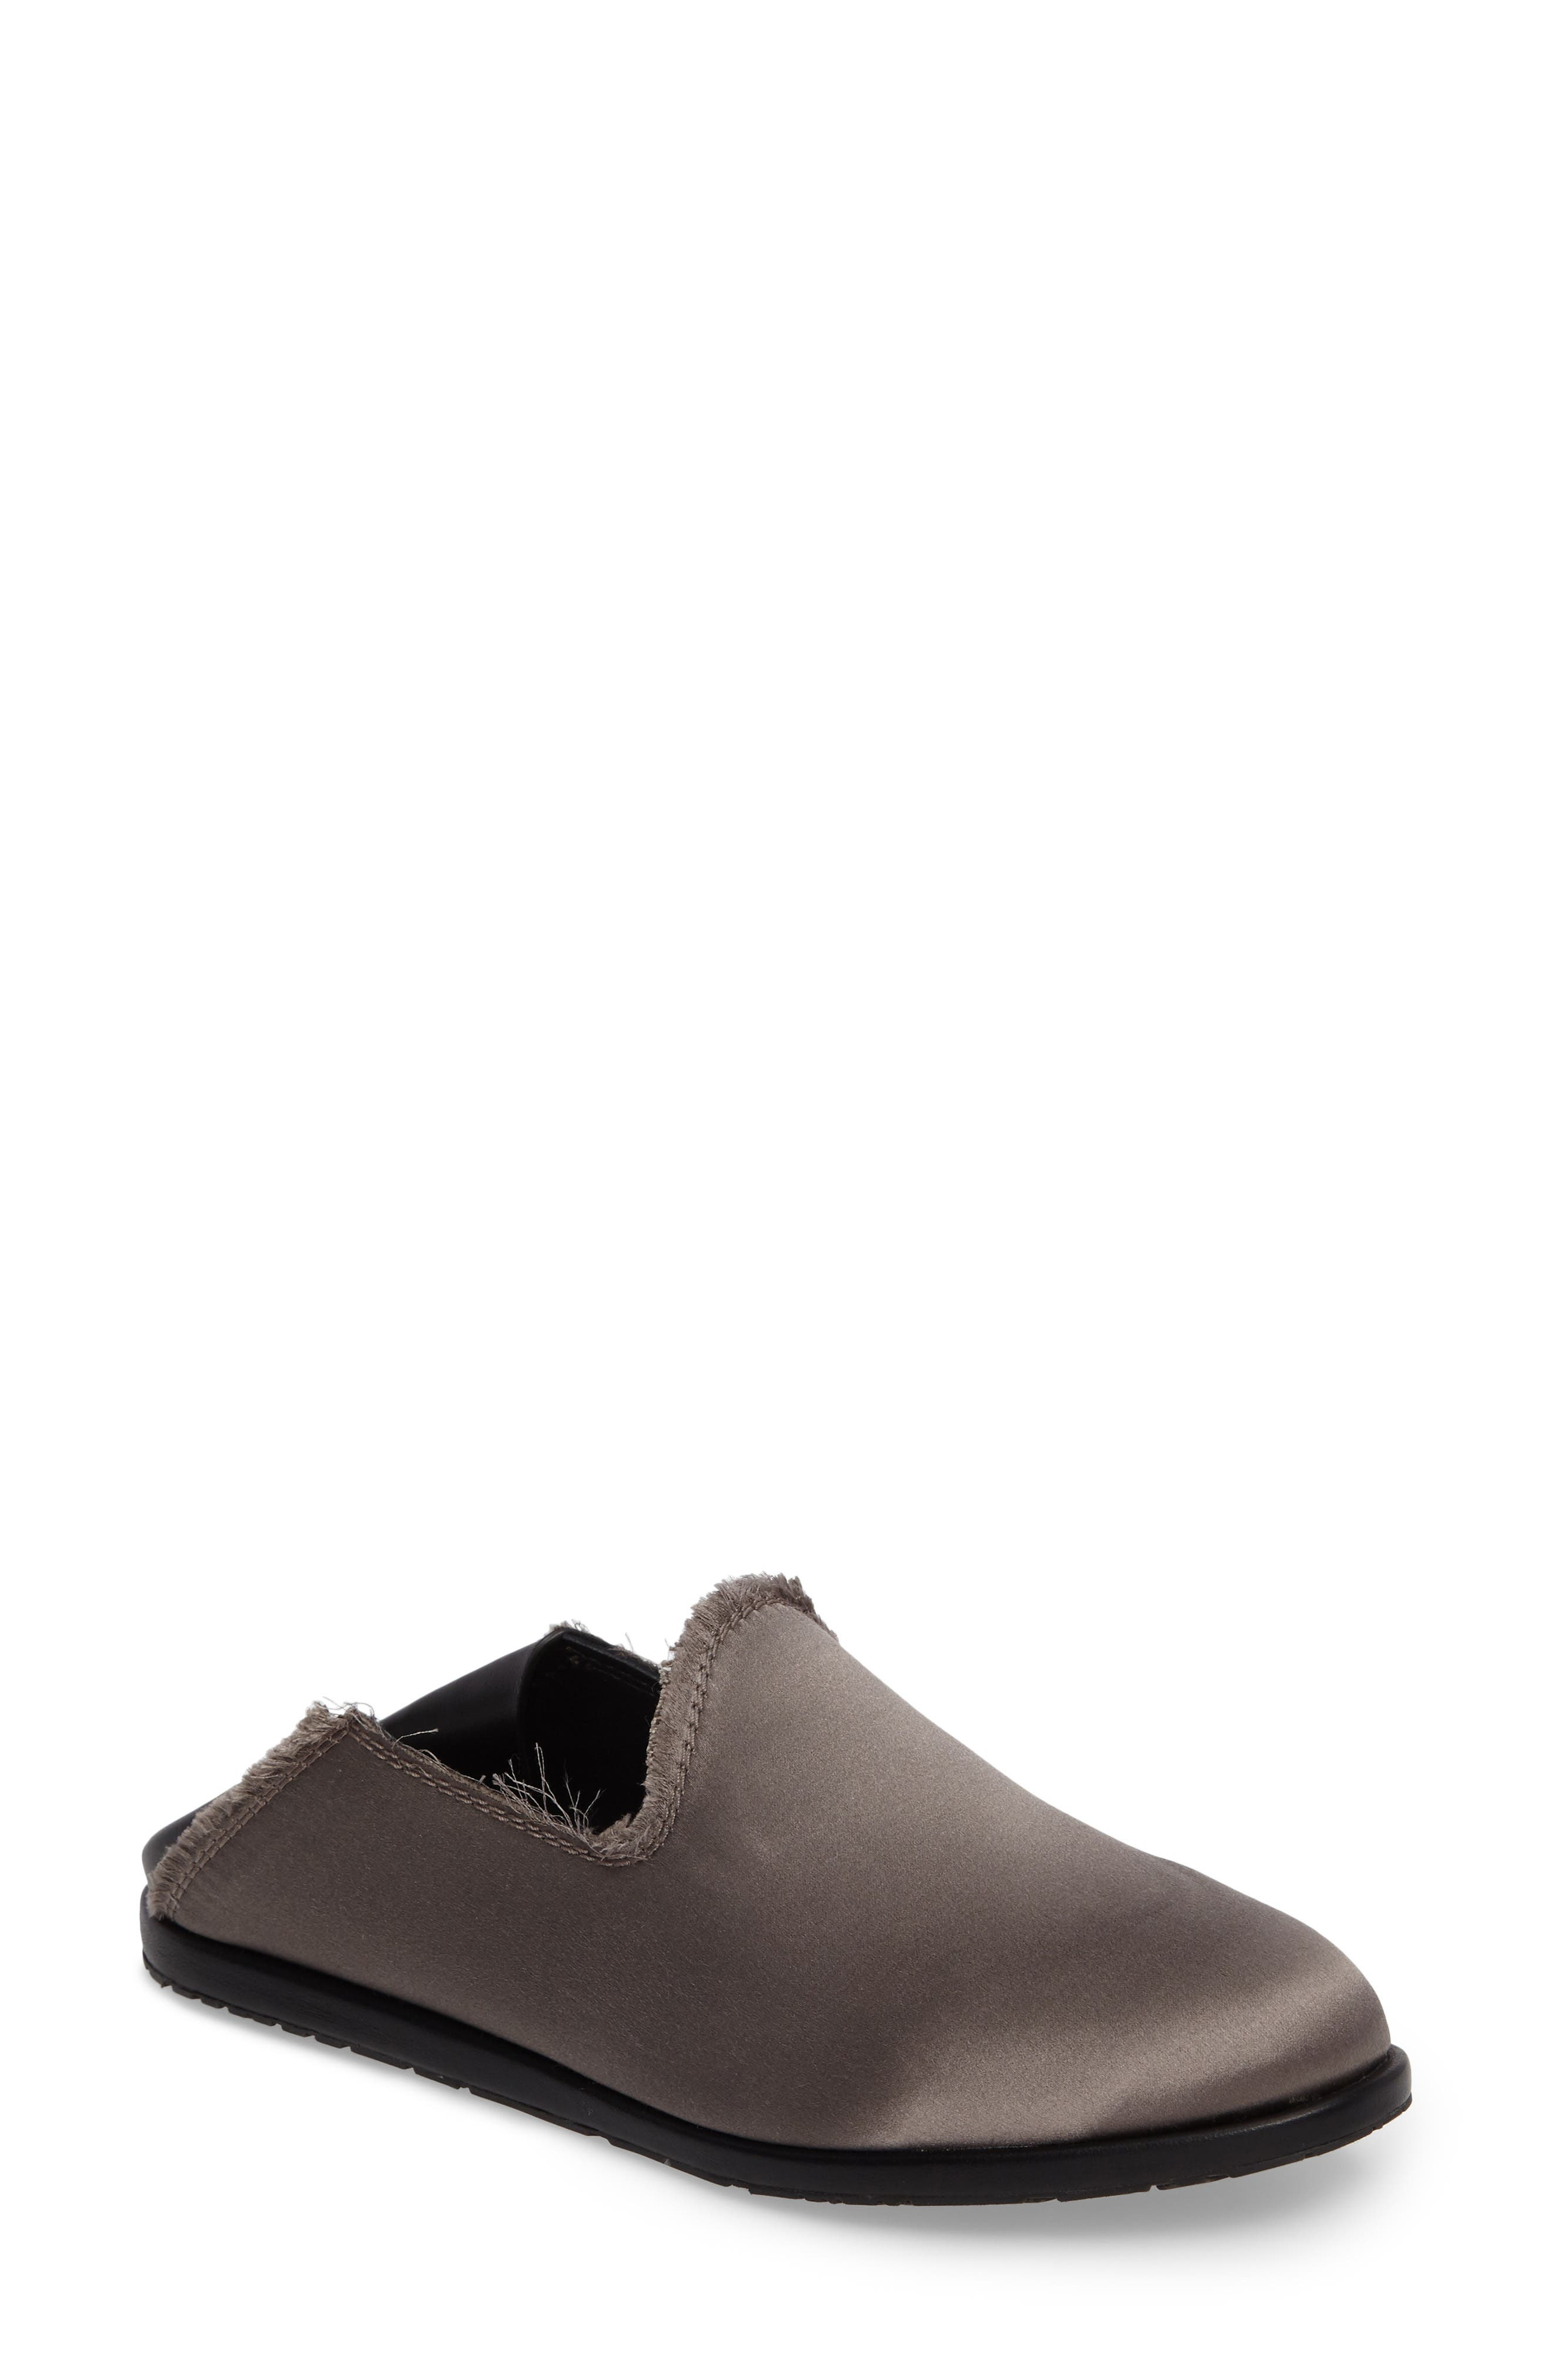 Yamir Convertible Loafer,                         Main,                         color, Truffle Satin